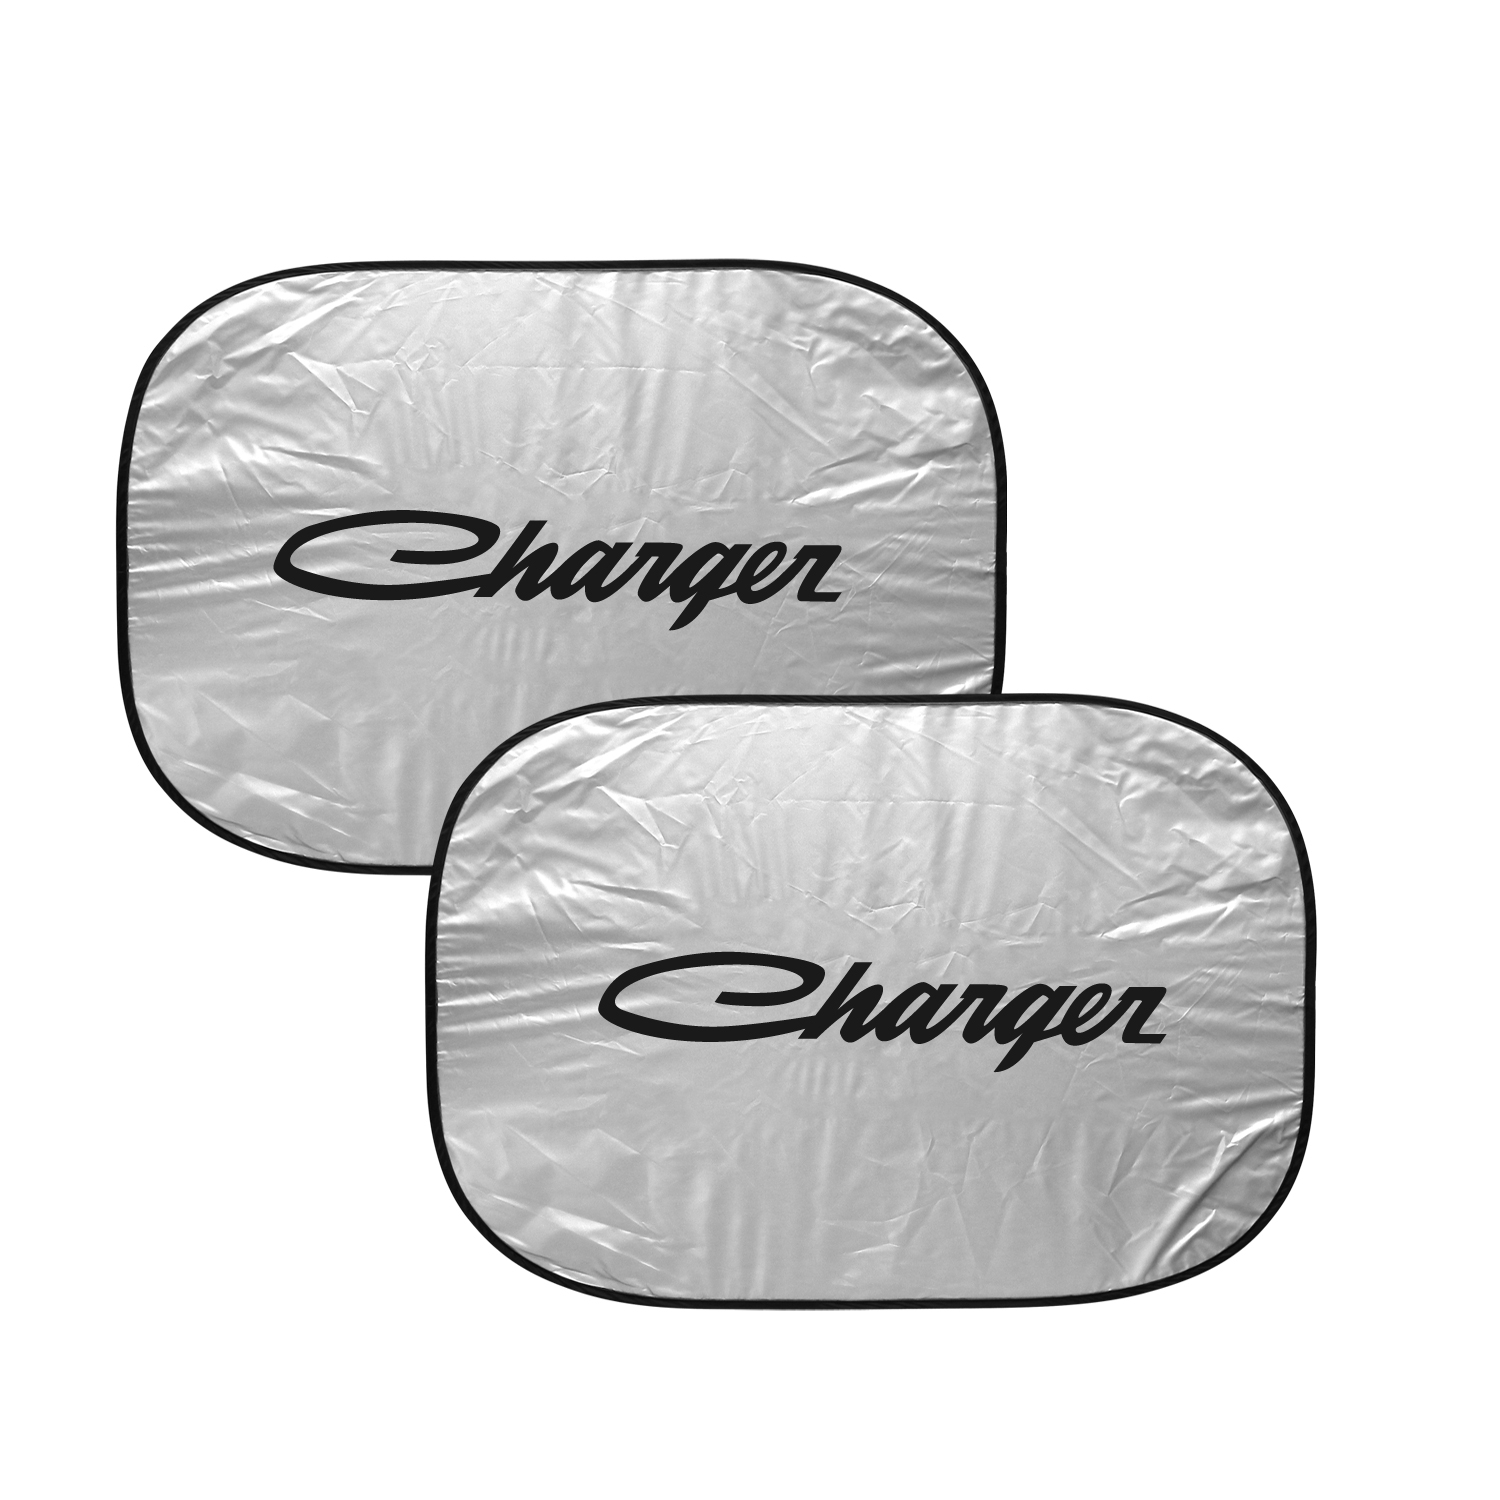 "Dodge Charger Classic Logo Dual Panels 2-28"" W x 24"" L Easy Folding Windshield Sun Shade"